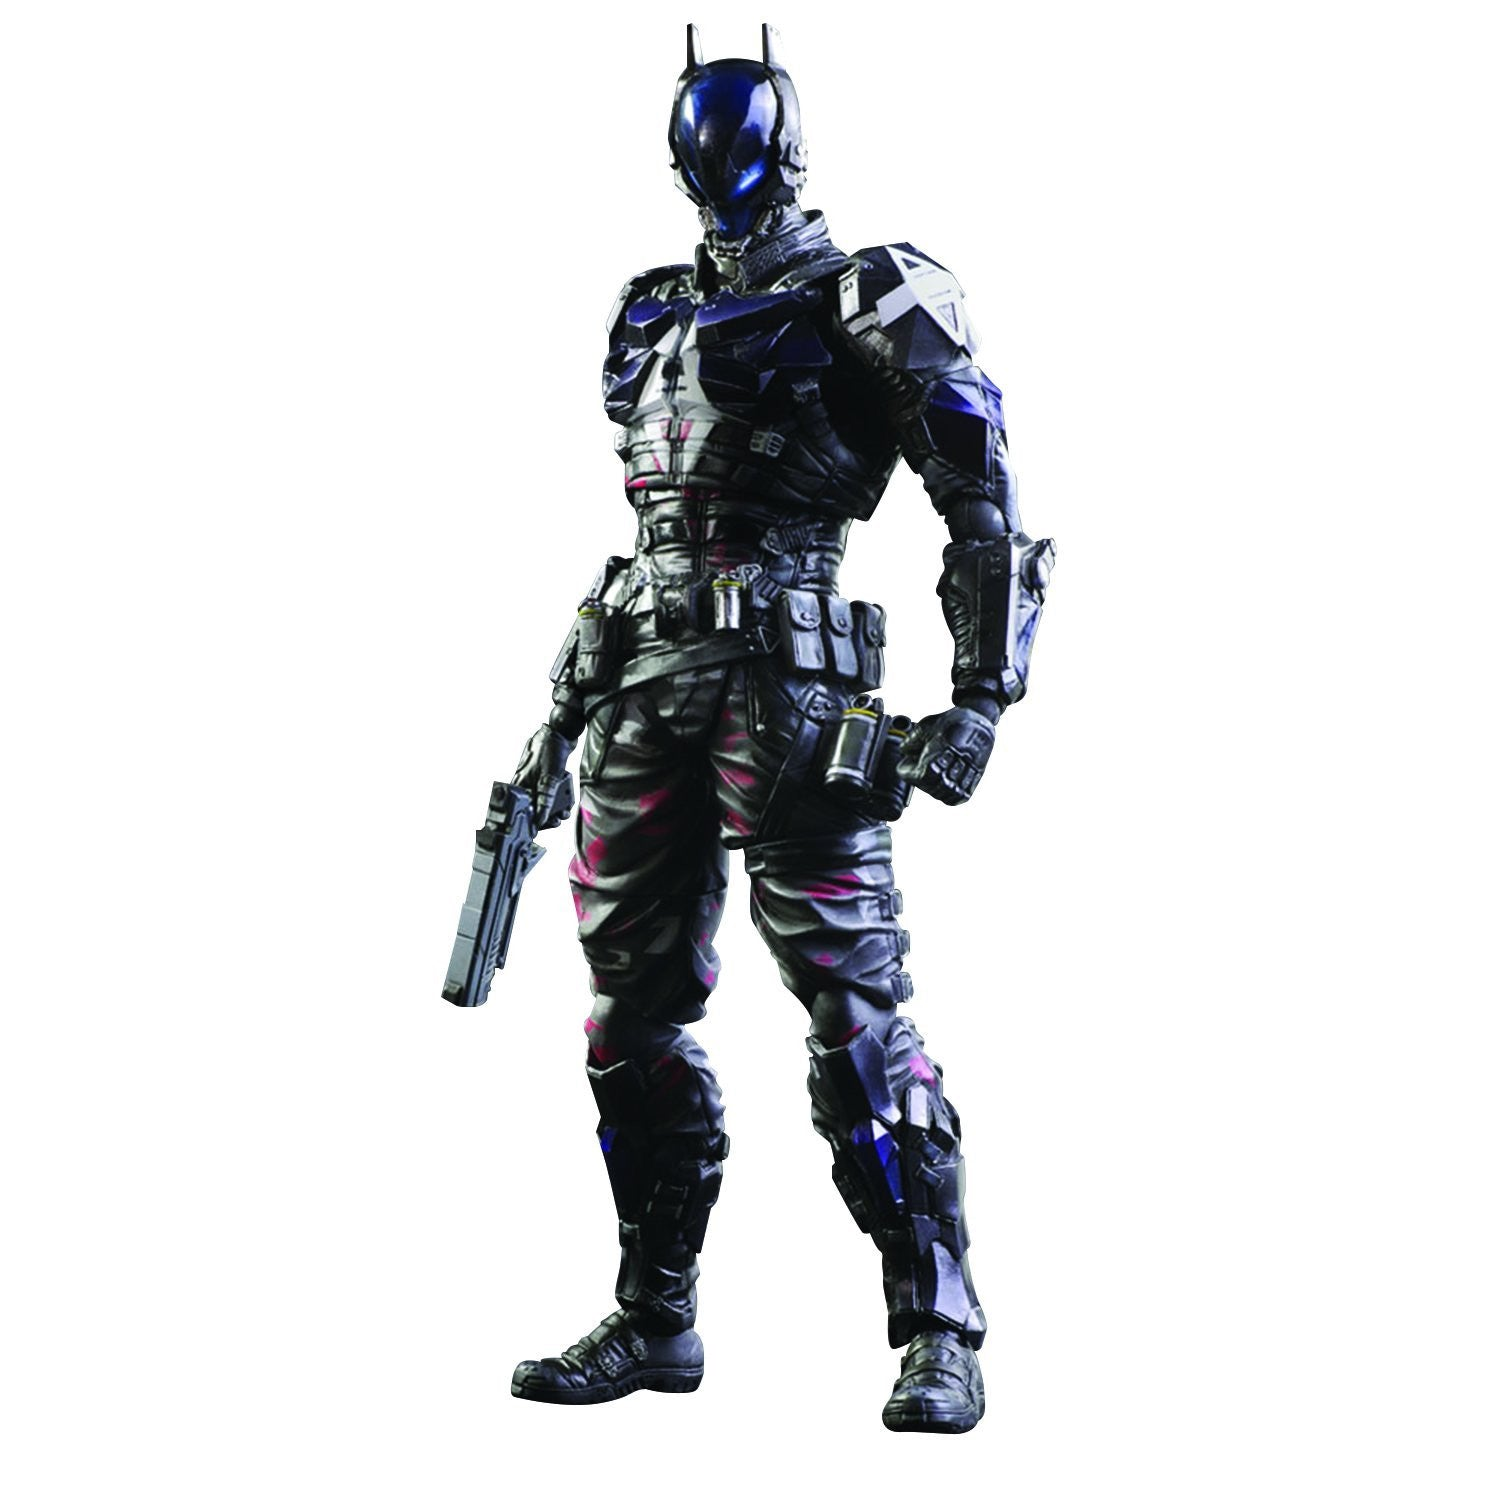 Square Enix ENX32249 Batman: Arkham Knight Play Arts Kai Action Figure